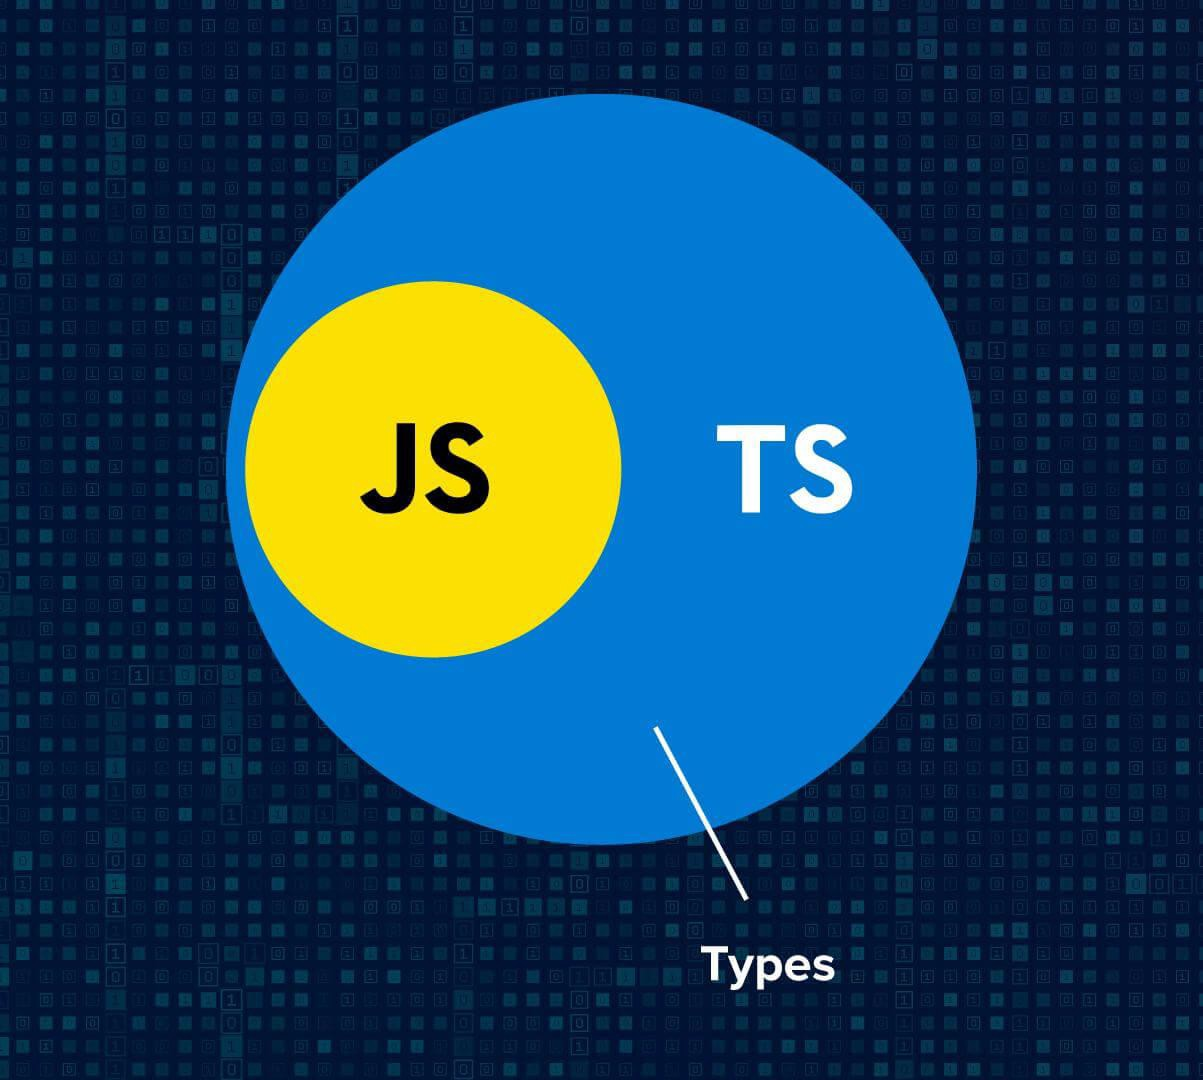 Javascript icon within a larger Typescript icon